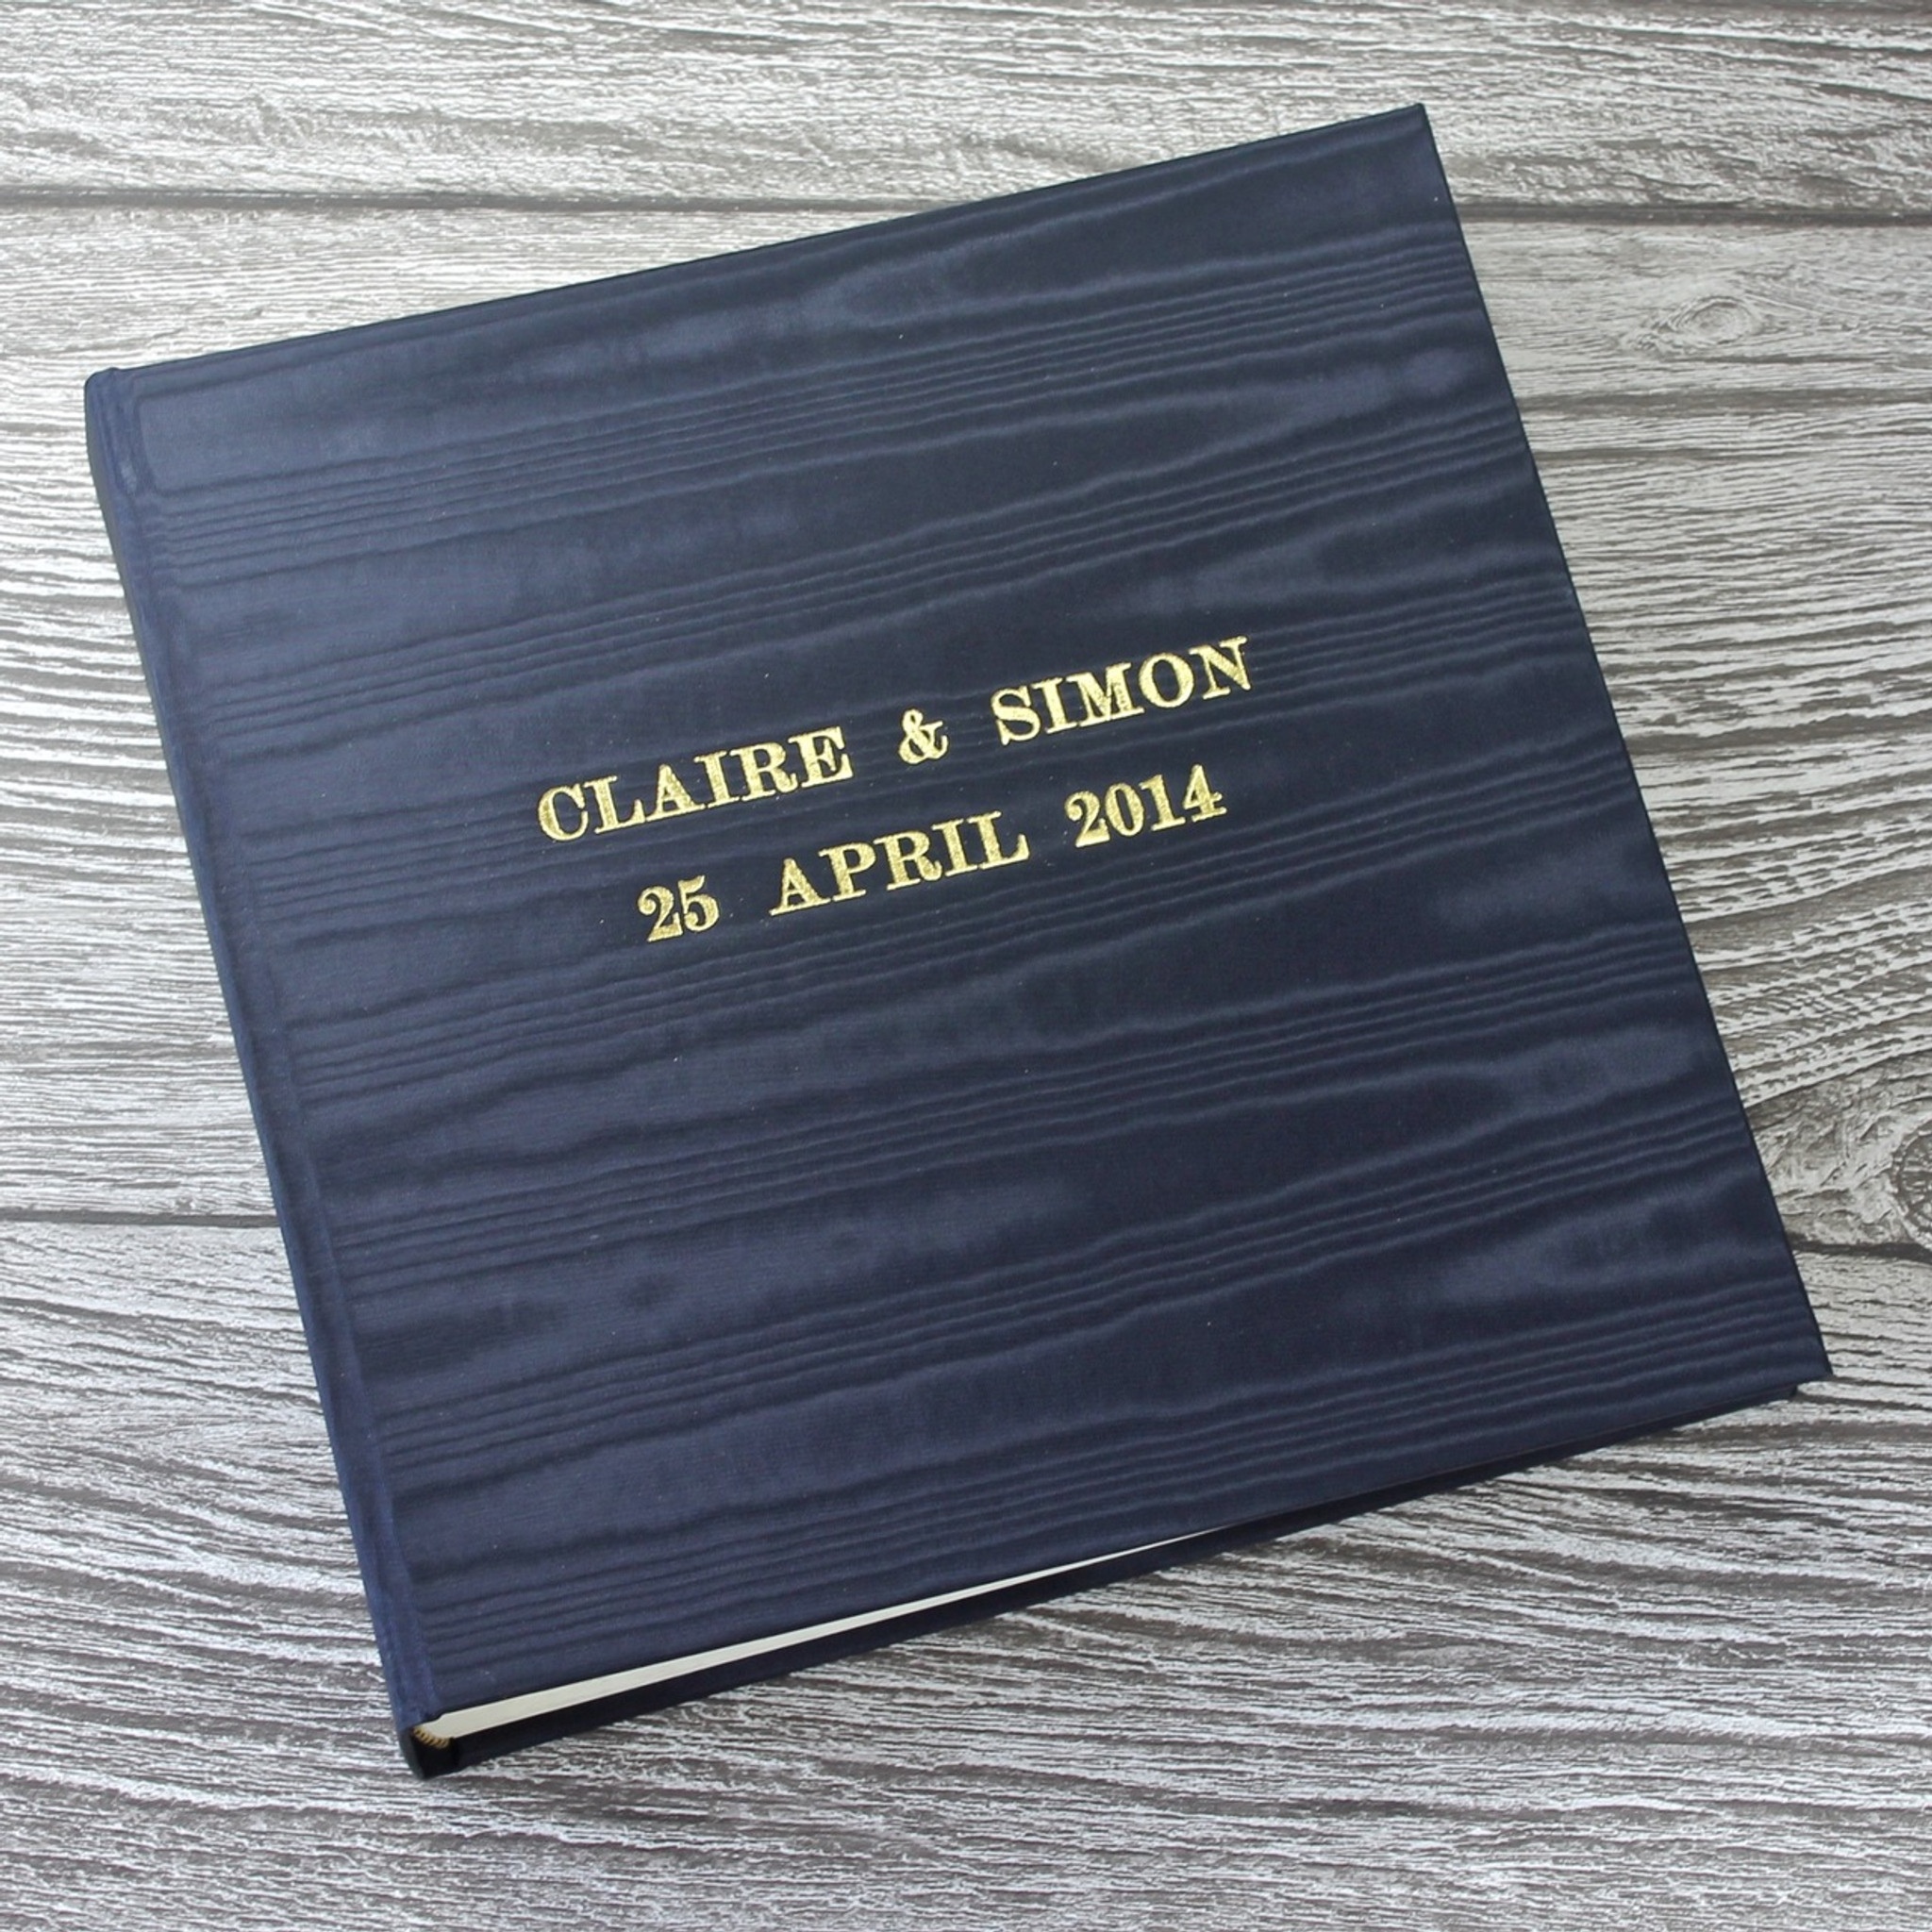 Navy Moire satin wedding photo album